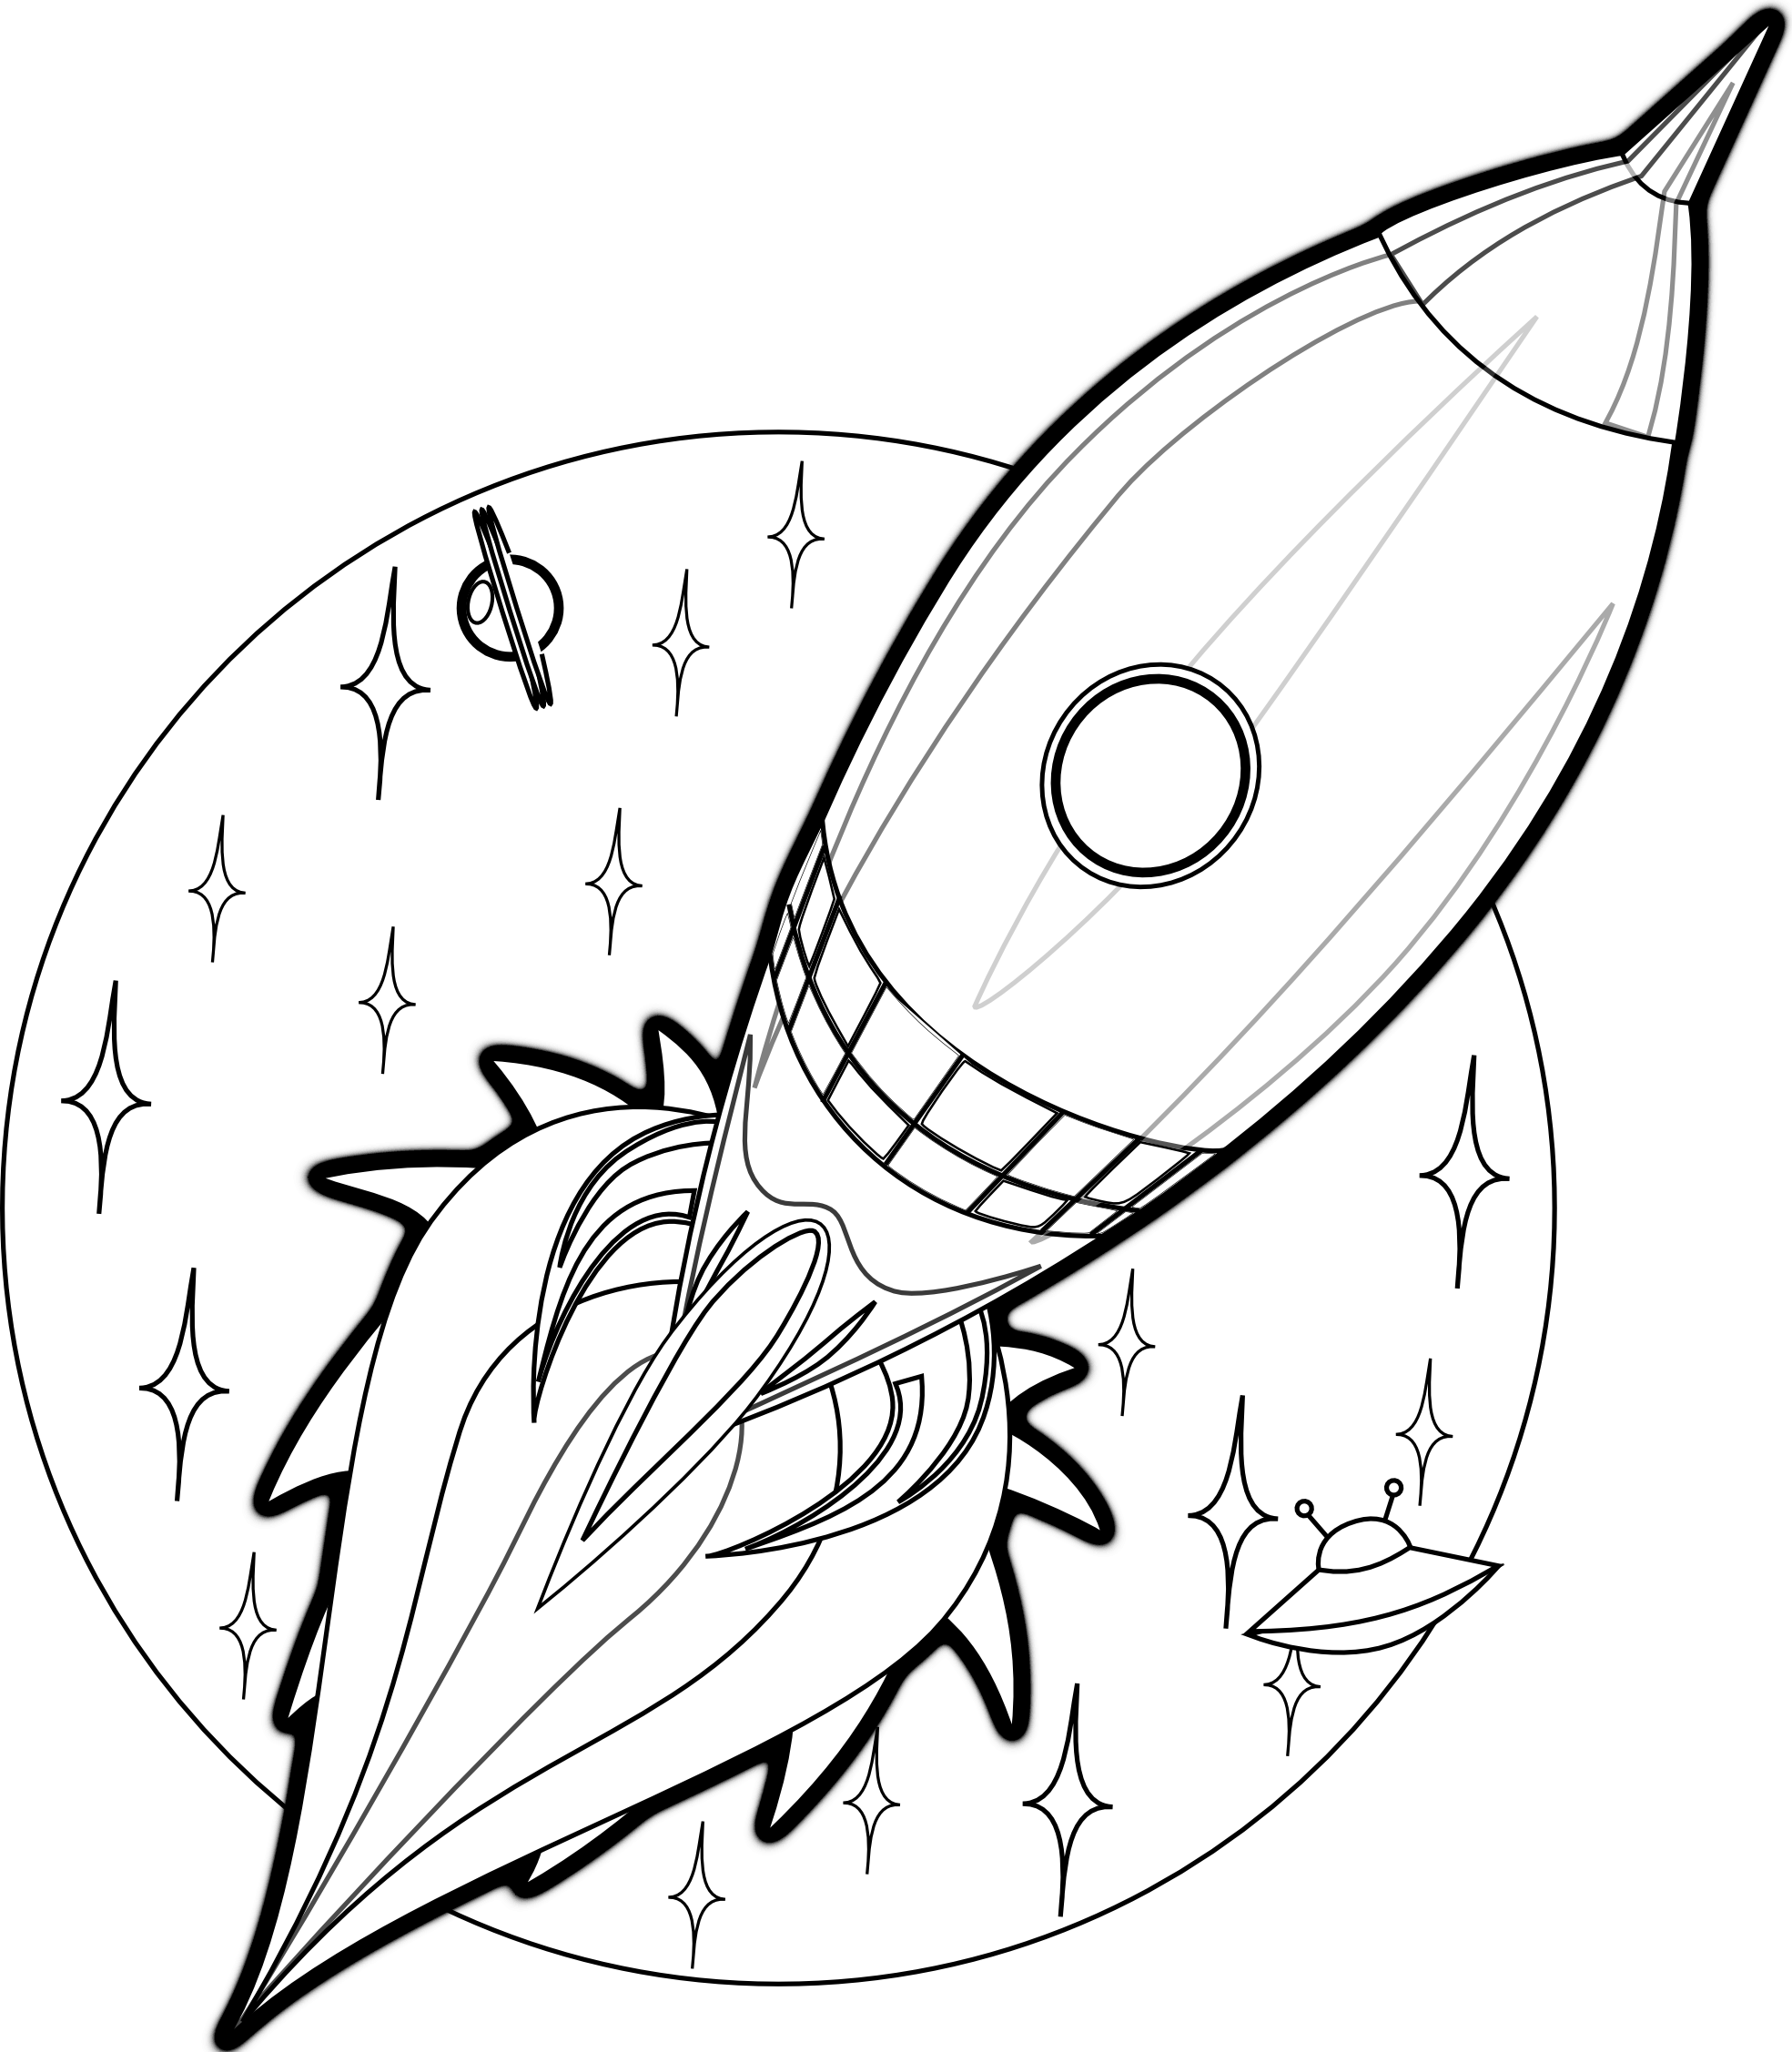 Pin by Mary McCurdy on Reference Images: Rocket Ships in